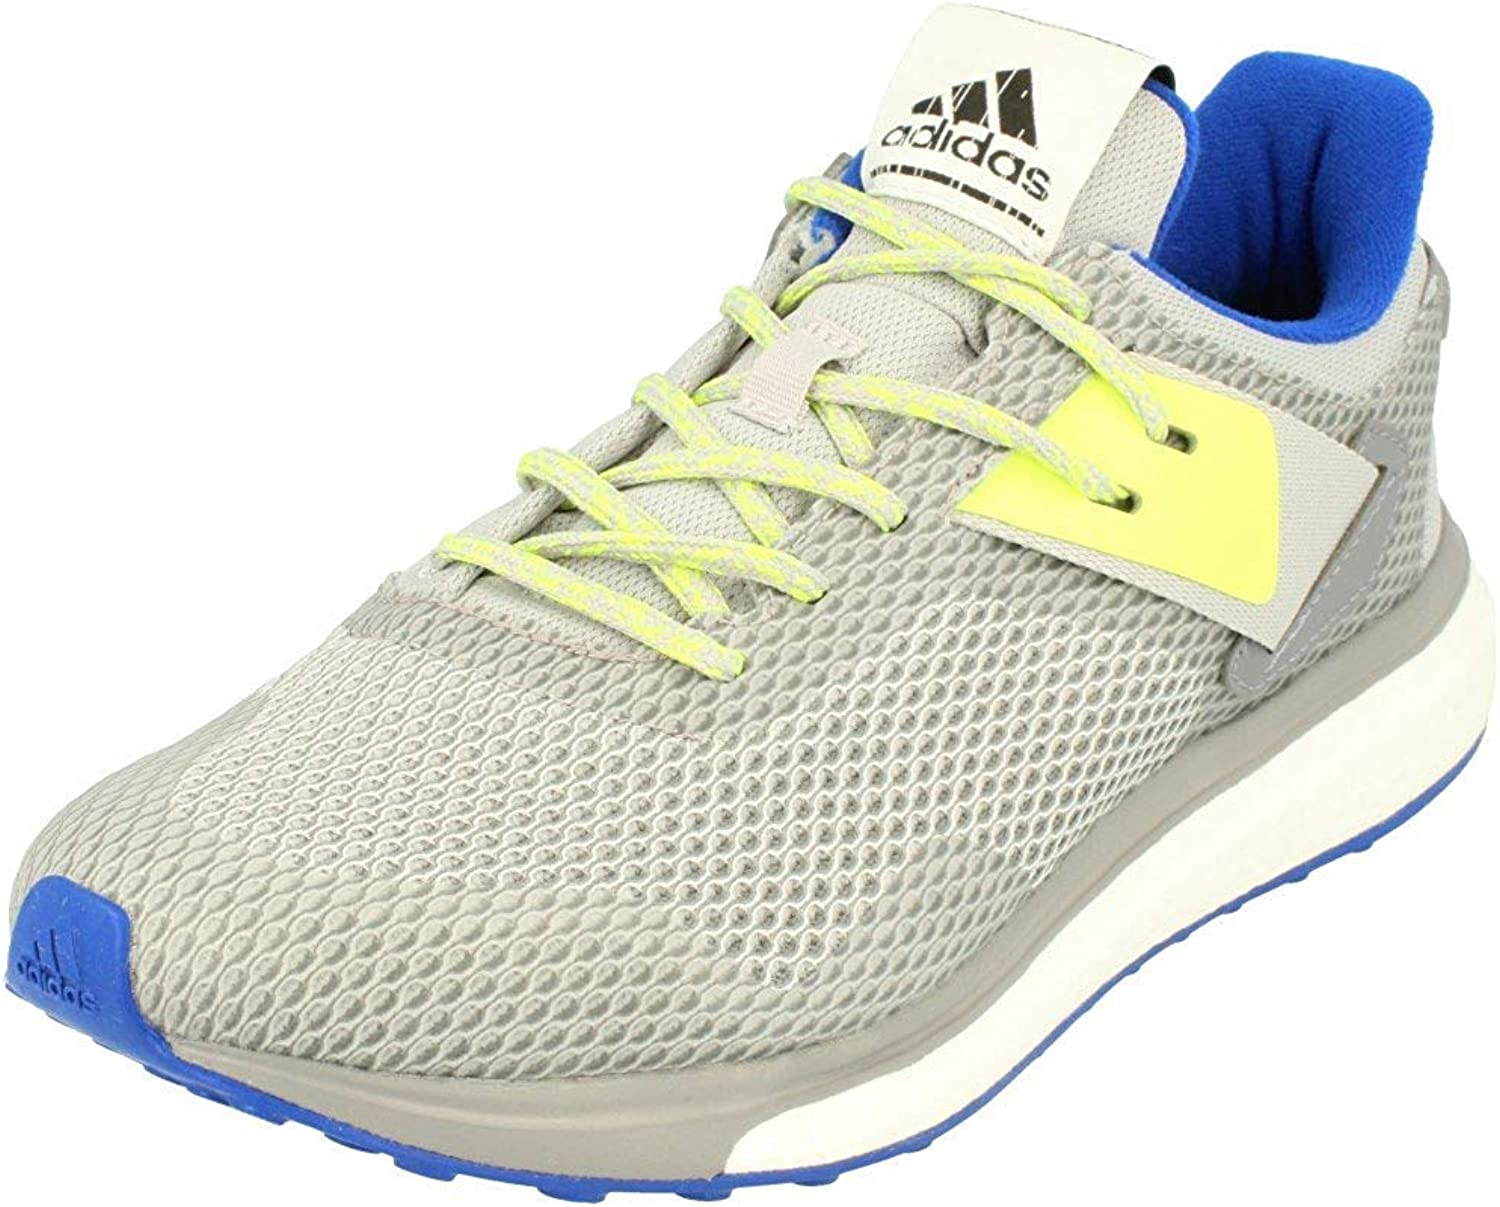 Adidas Response 3 Boost Hombres Running Sneakers (UK 7.5 US 8 EU 41 1/3, Grey Blue White AQ2498)